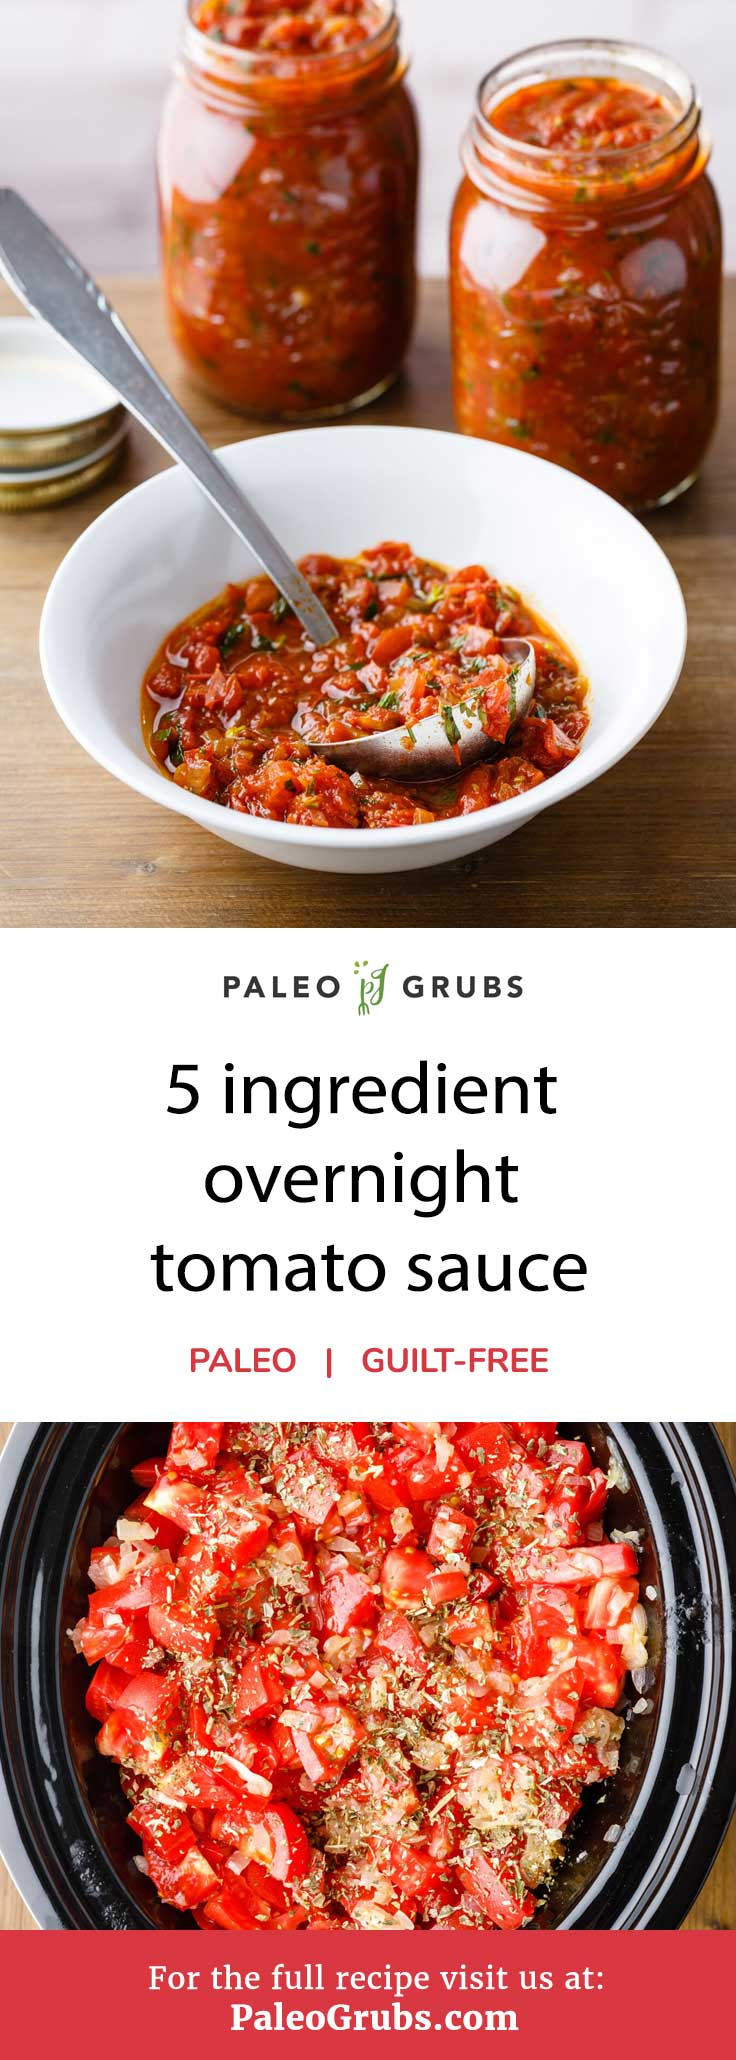 Stop worrying if the tomato sauce you find on store shelves is appropriate for your paleo diet and just some of your very own with this easy to follow recipe. It's a simple 5 ingredient overnight tomato sauce that features all natural ingredients with no artificial additives whatsoever. You can even use honey to sweeten it to your preferred taste.